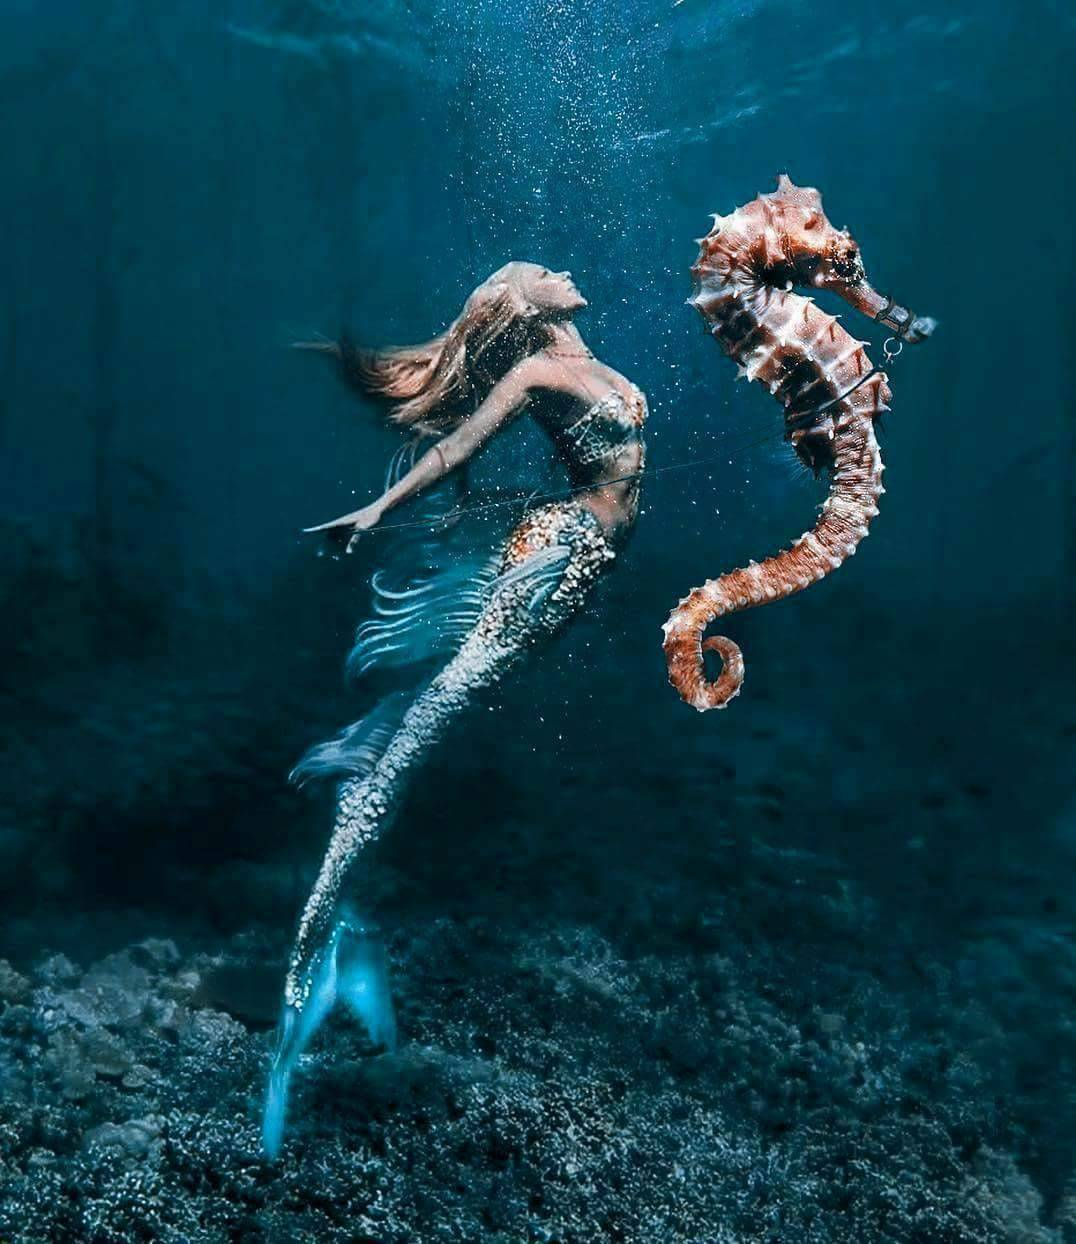 mermaids, fantasy, beautiful and mermaid